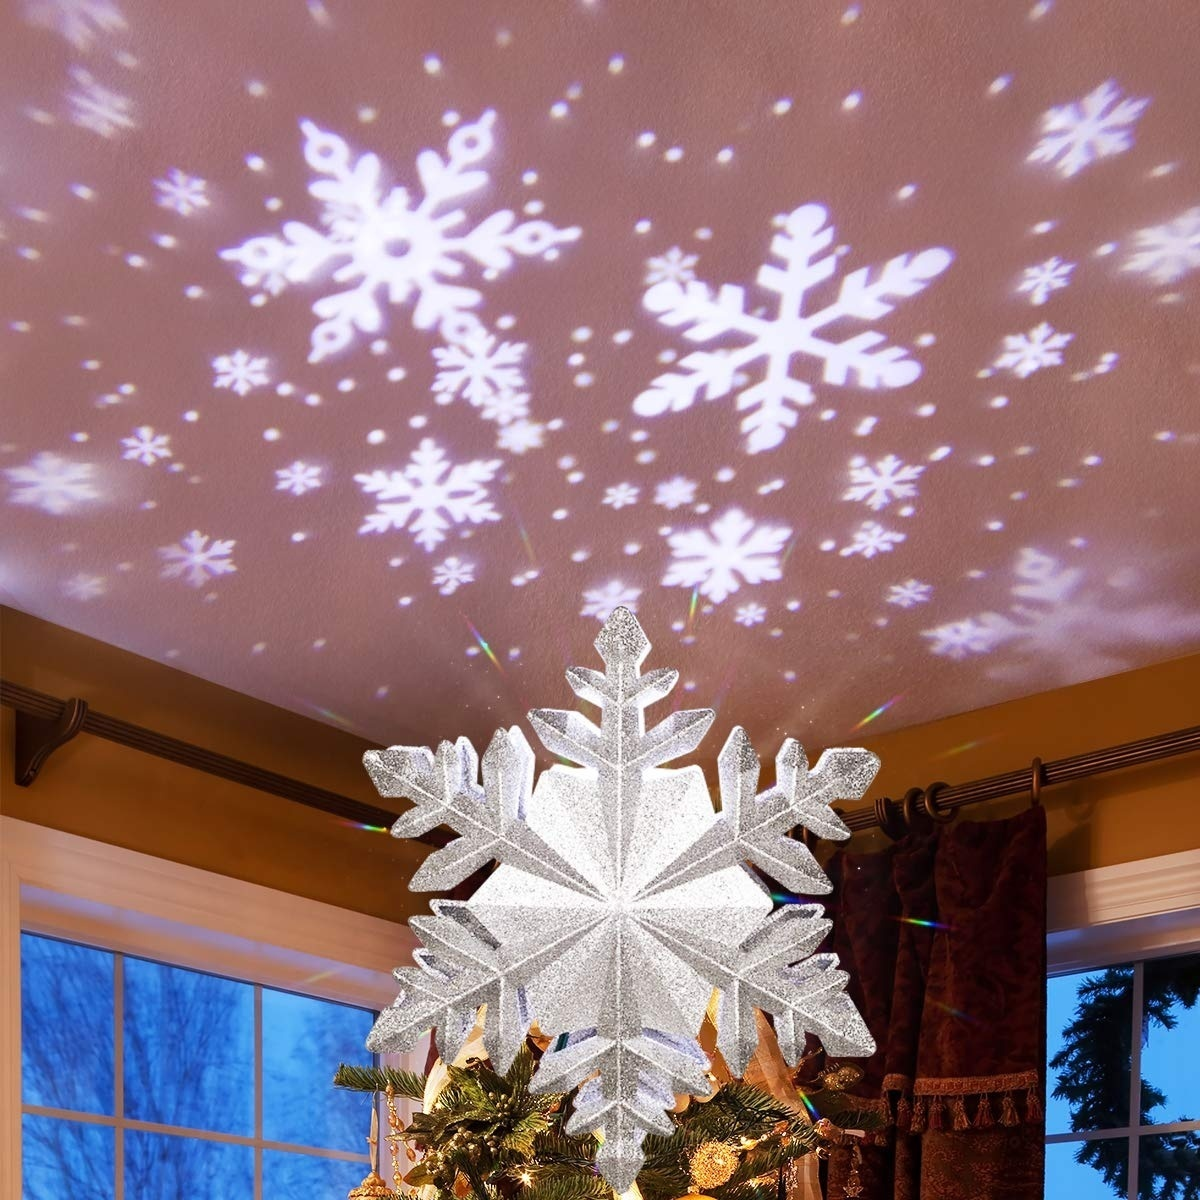 LED 3D Snow Flower Projector Light for Christmas Tree Topper Lighted Rotating Xmas ecoration European plug